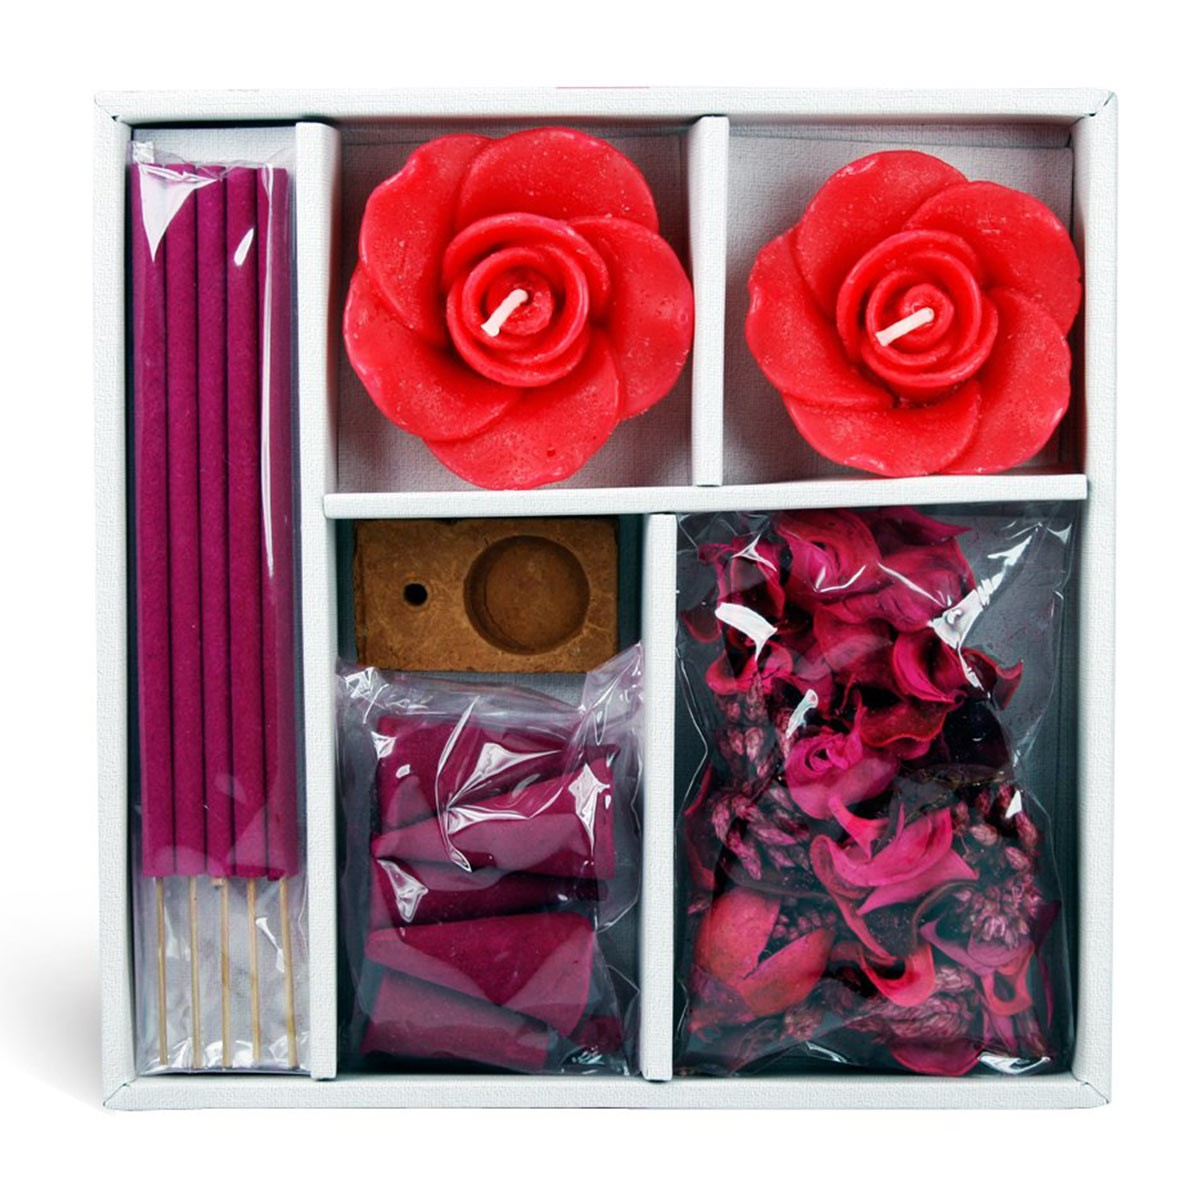 Iris Rose Candle & Potpourri Fragrance Gift Set